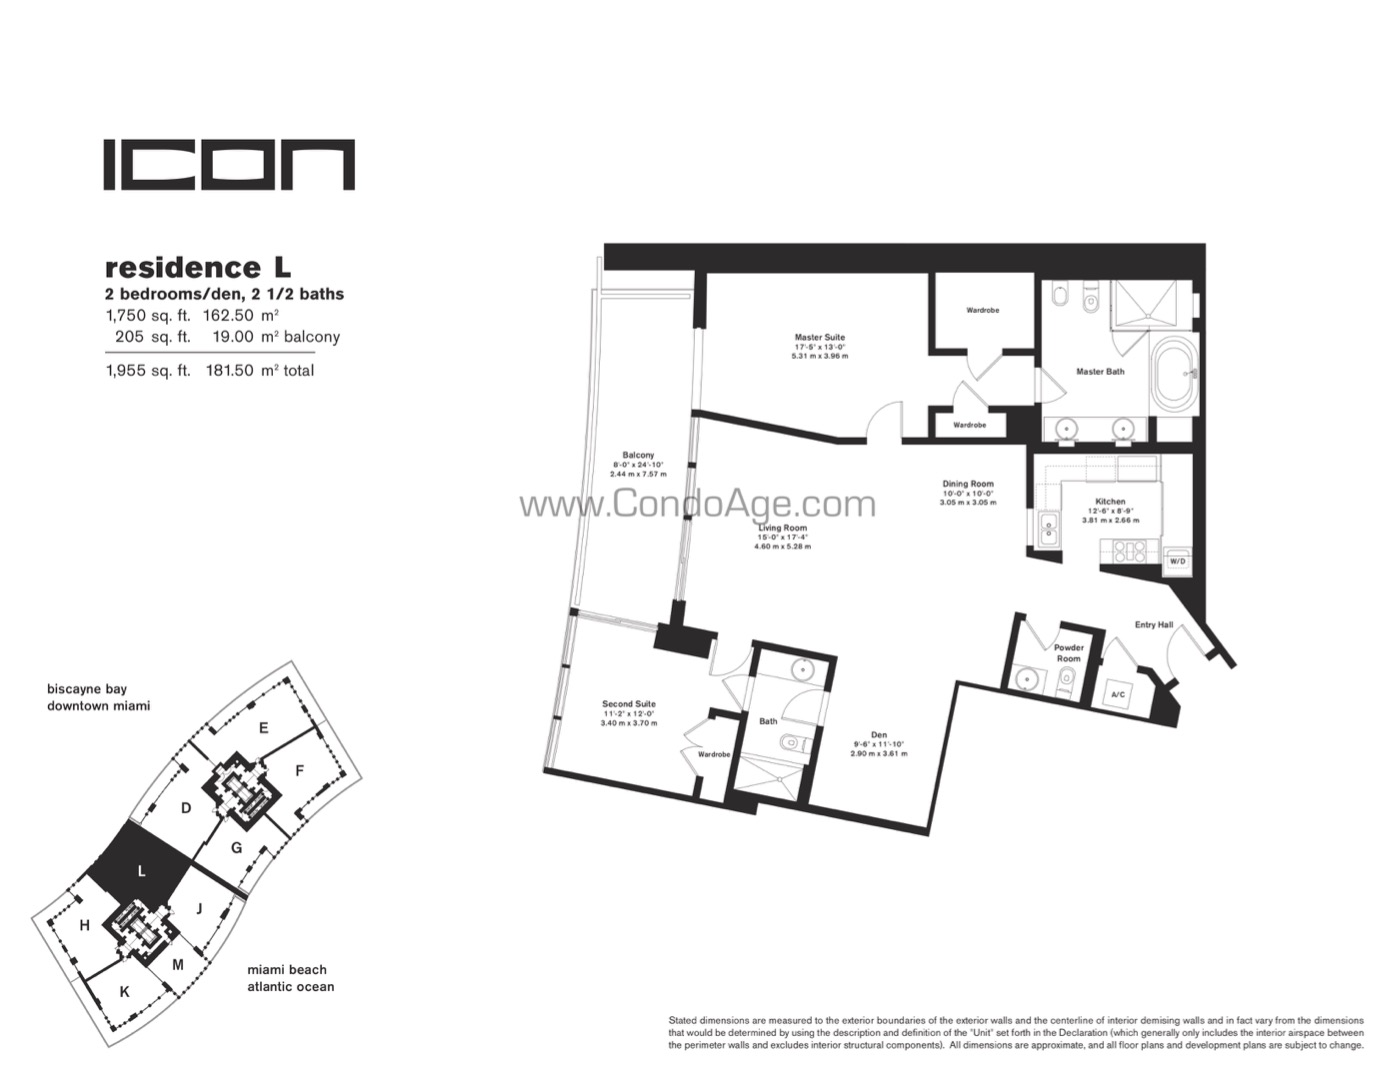 L floor plan image